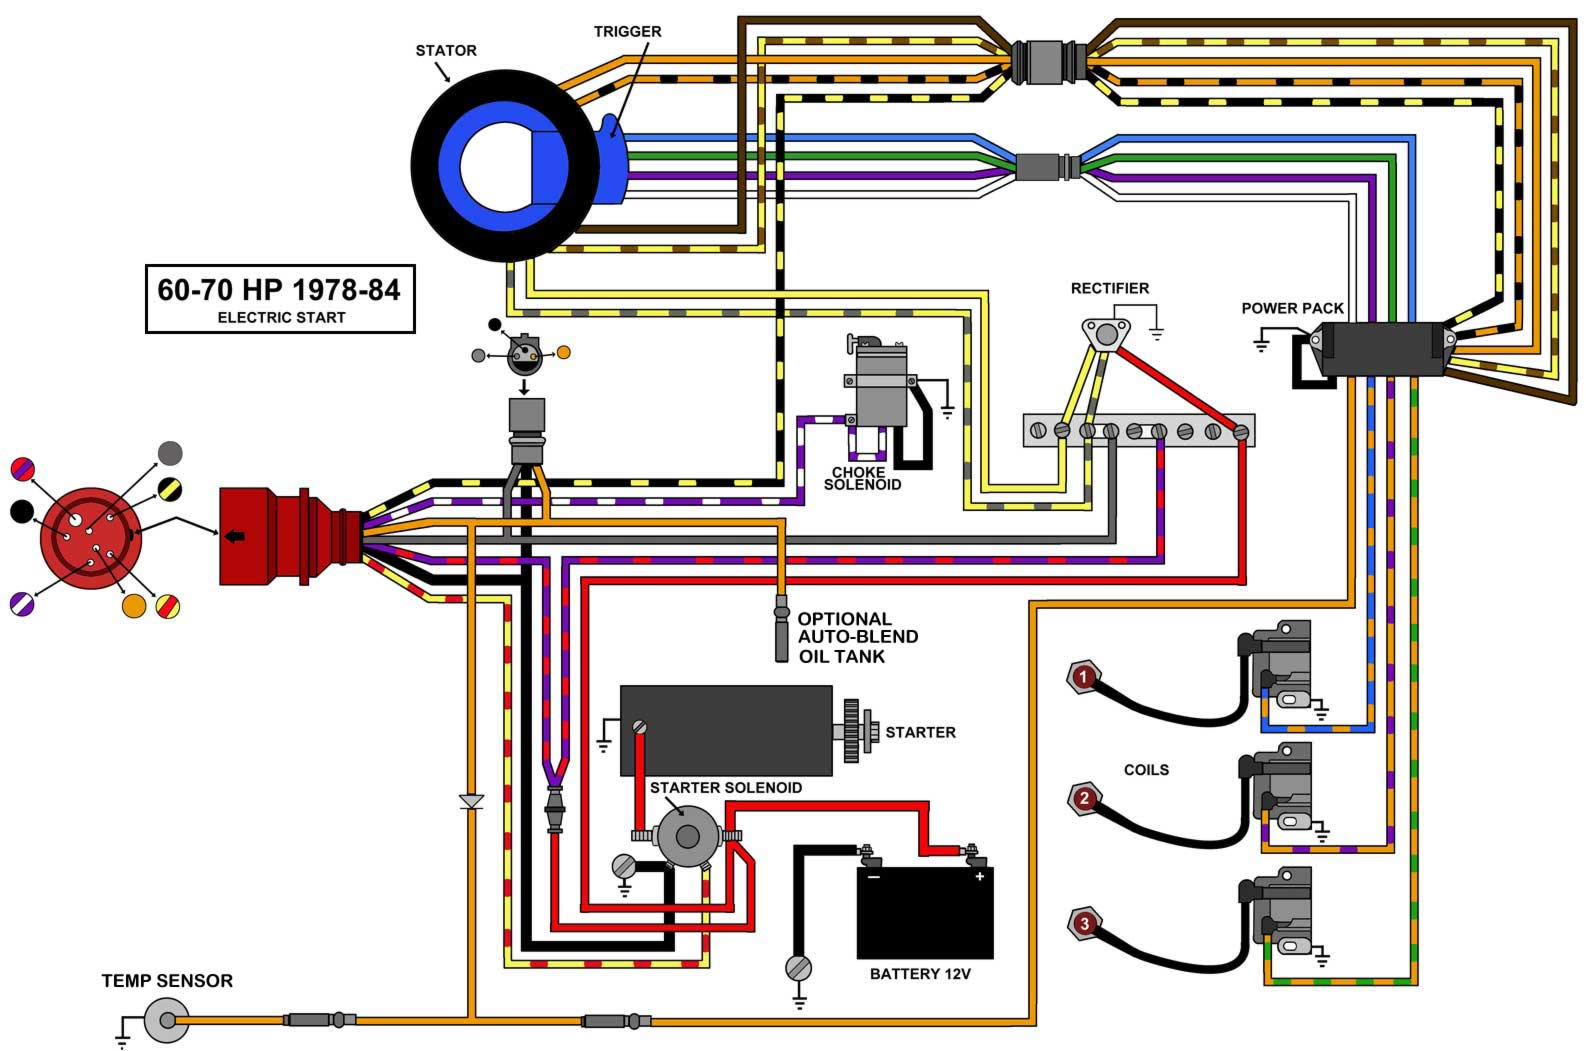 Pack Wiring Diagram Likewise 2000 Chevy Astro Van Fuse Box Diagram